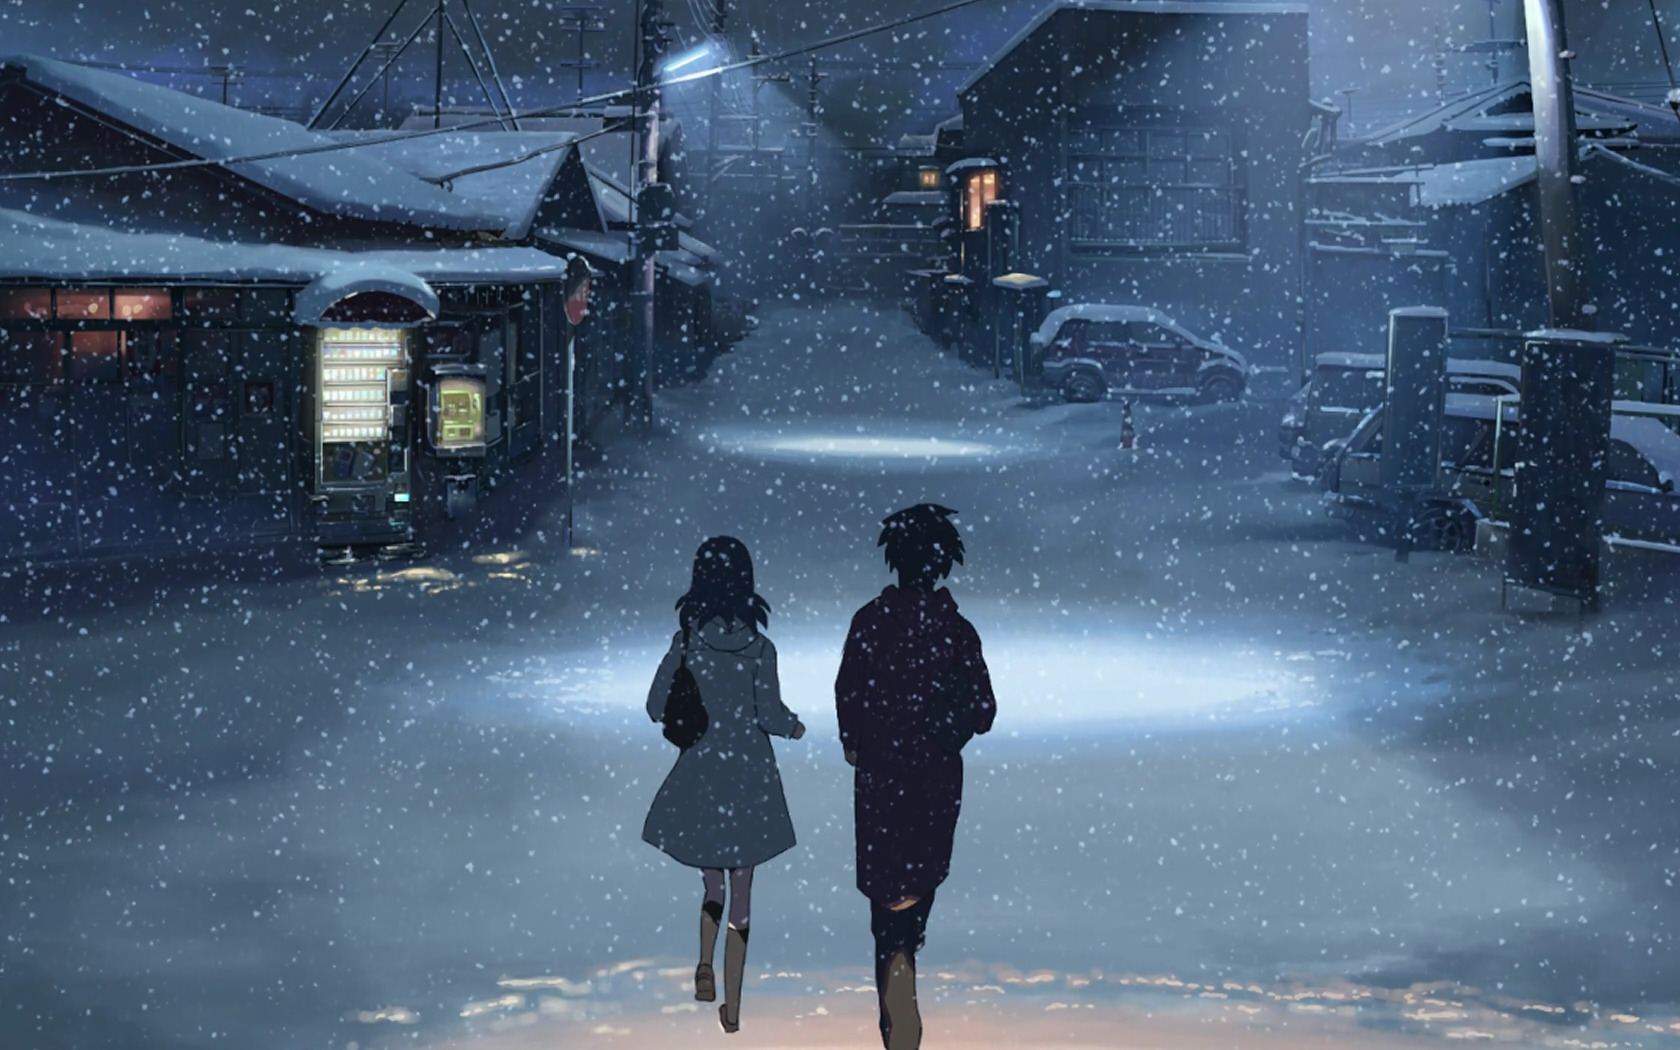 winter makoto shinkai scenic HD Wallpaper